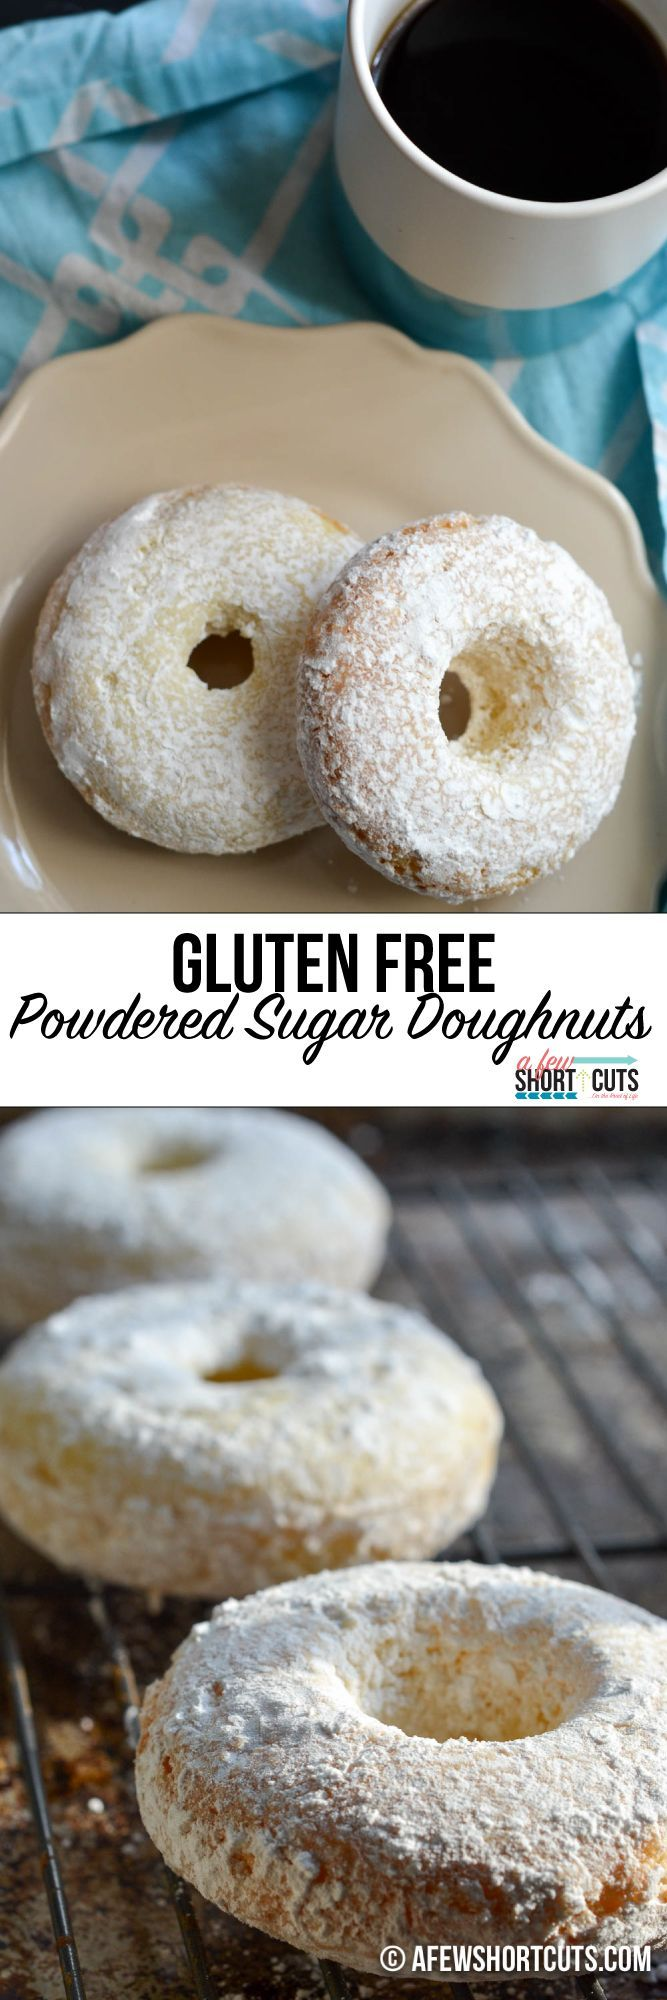 ... Gluten Free Powdered Sugar Doughnuts Recipe. Can be made dairy free